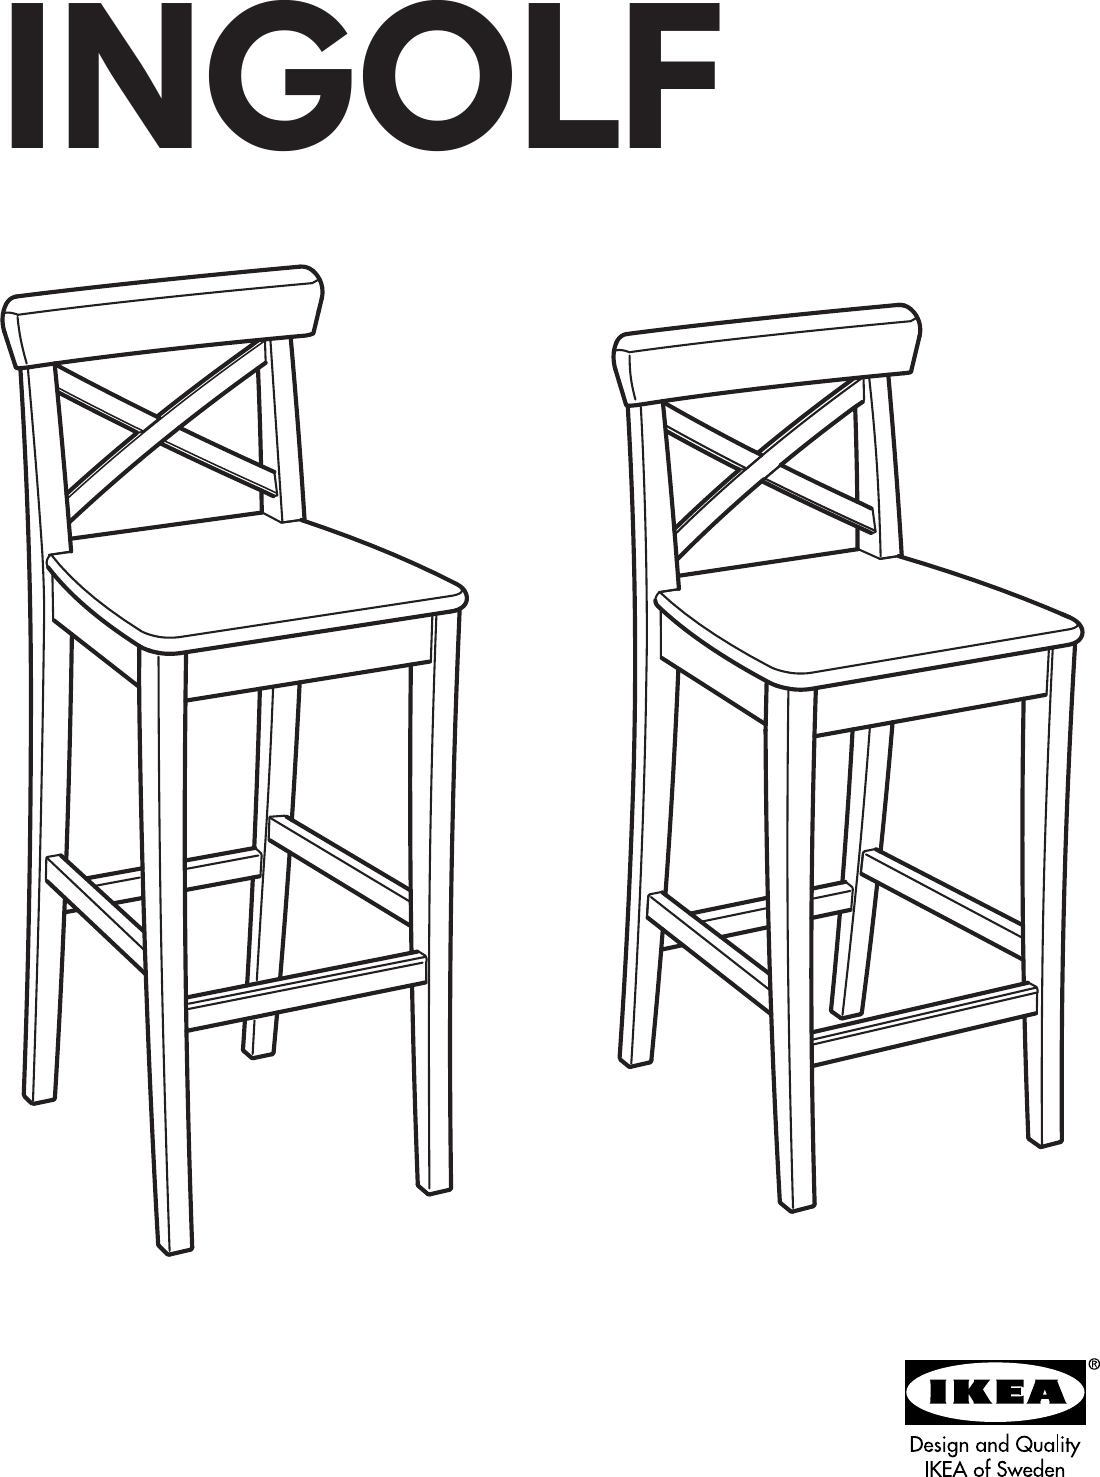 Buying Guide: How Tall Should Stools Be For A 35 Inch